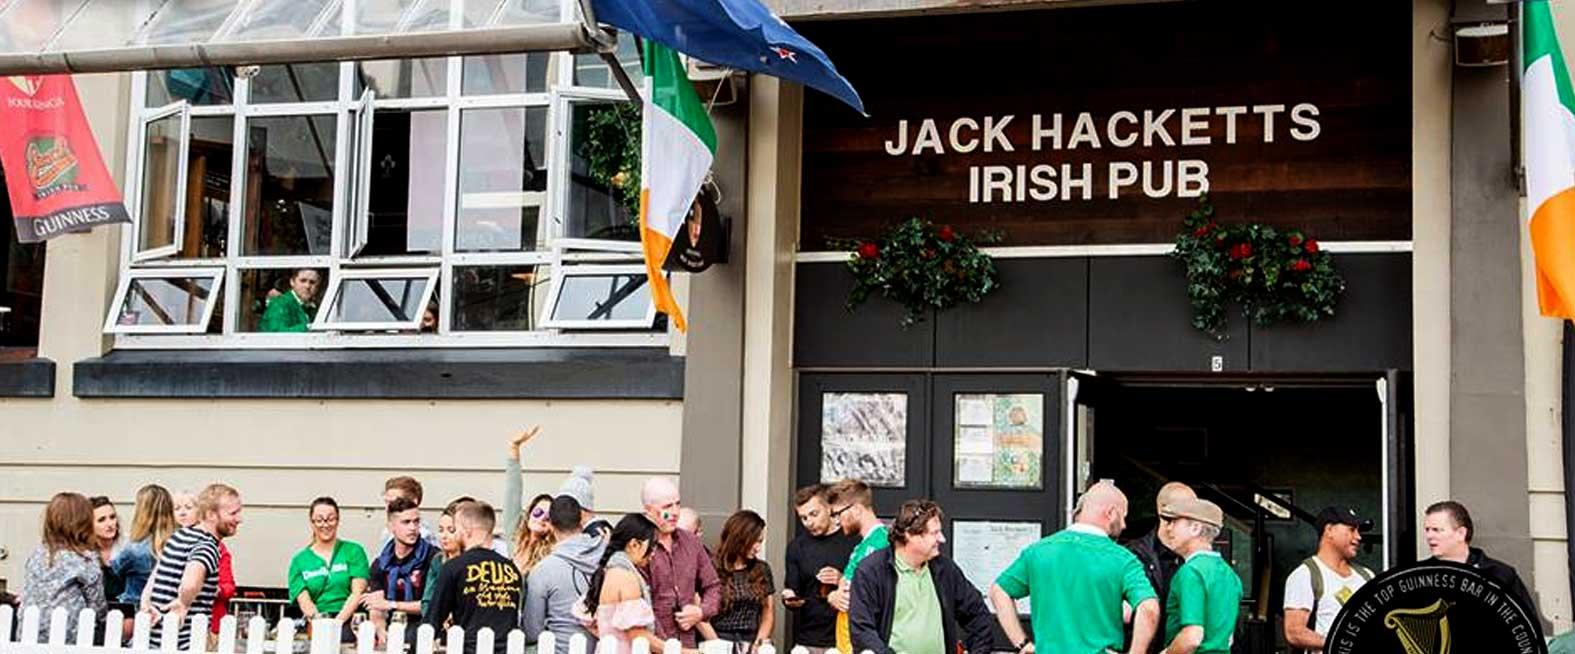 Jack Hackett's Irish Pub